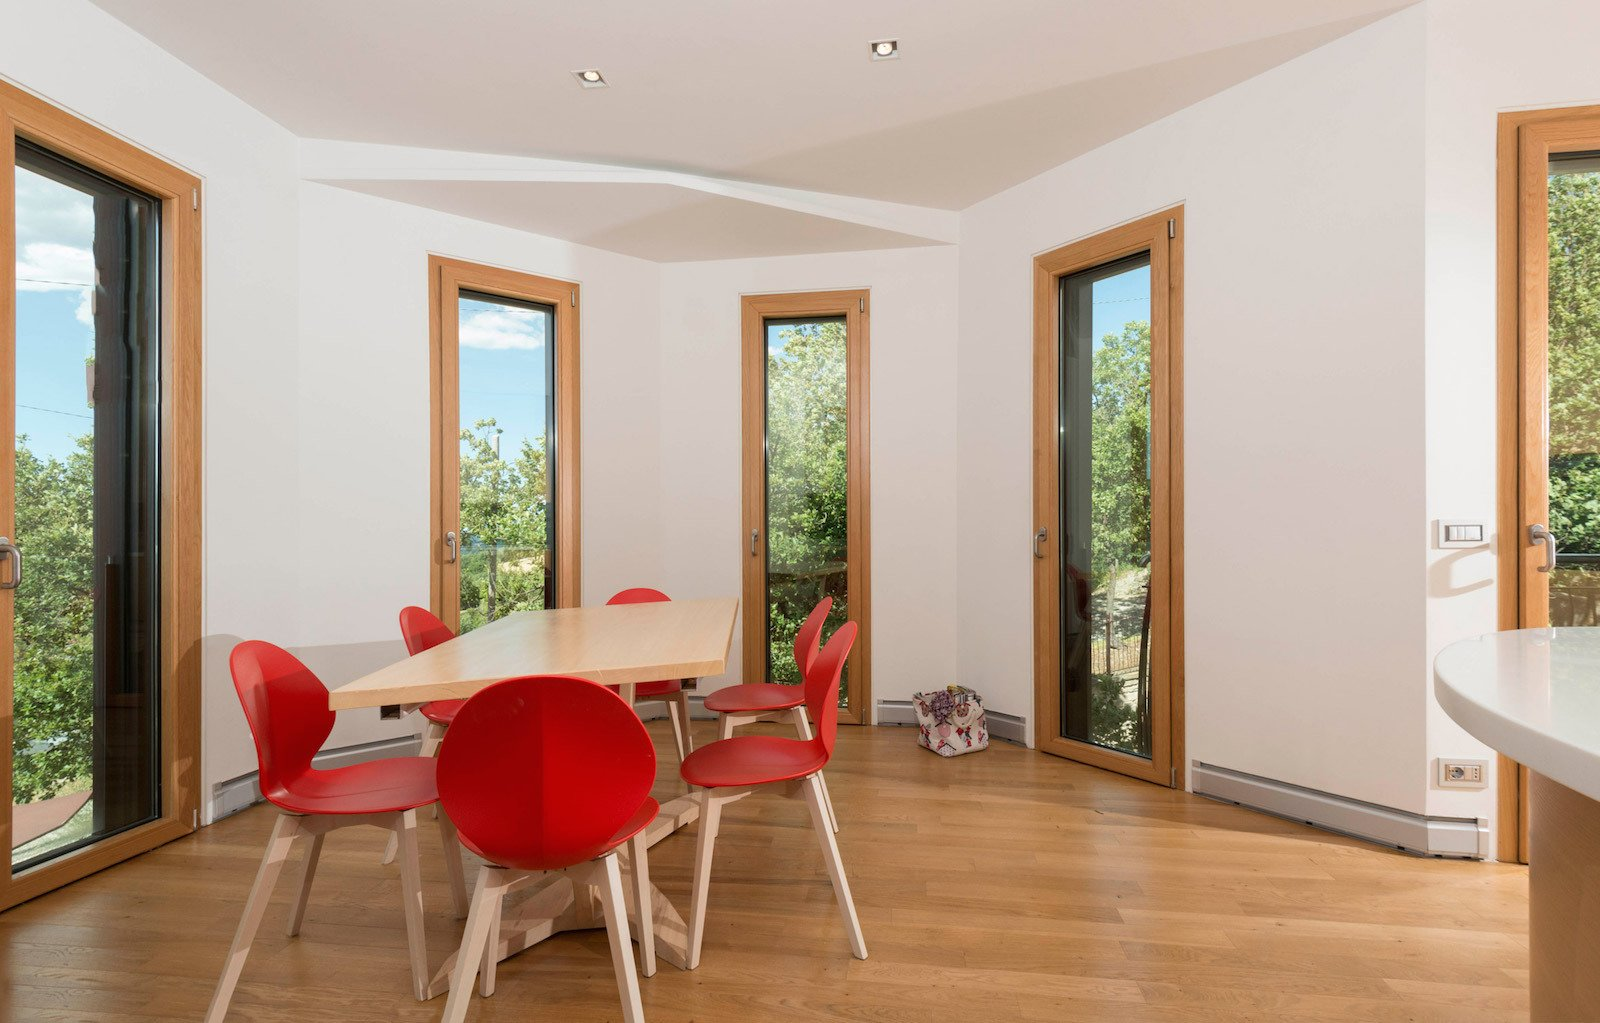 Dining Room, Chair, Table, Recessed Lighting, and Medium Hardwood Floor Operable glazed openings bring in natural light and ventilation to keep energy demands low.   Photo 3 of 8 in This Octagonal Prefab in Italy Rotates a Full 360 Degrees to Follow the Sun